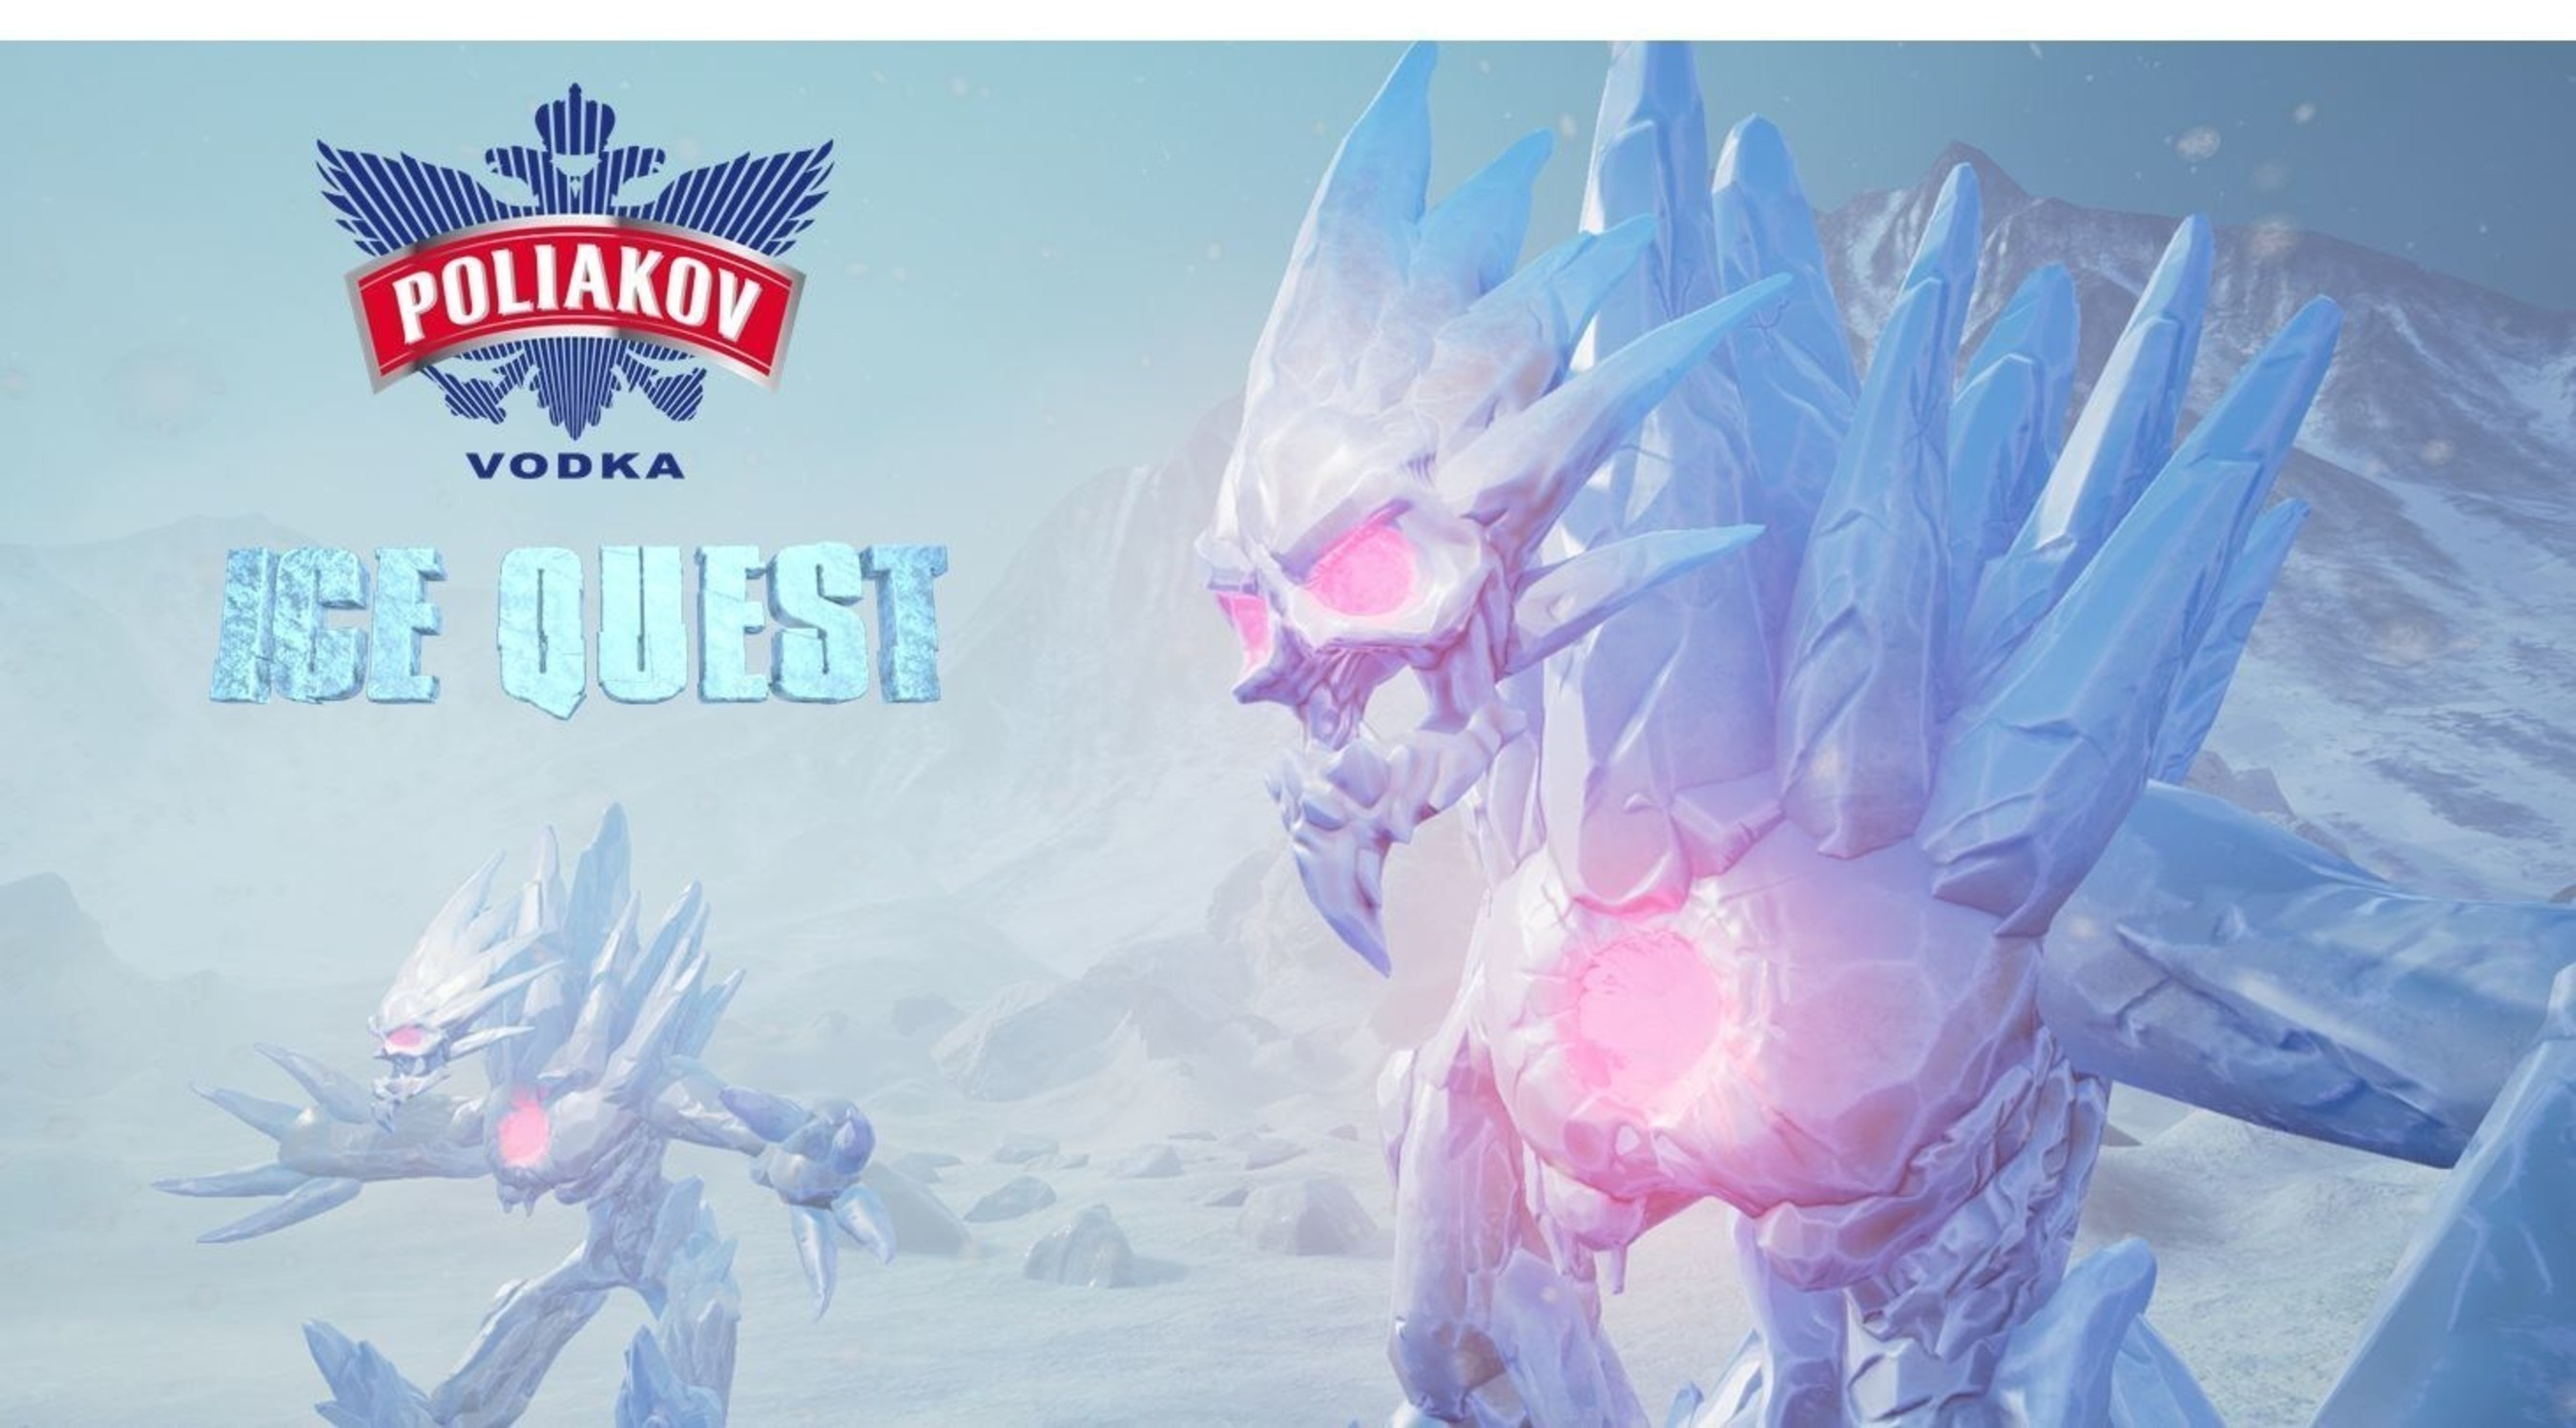 Poliakov the Extreme Vodka Unveils Its Futuristic New Digital Experience: Poliakov Ice Quest